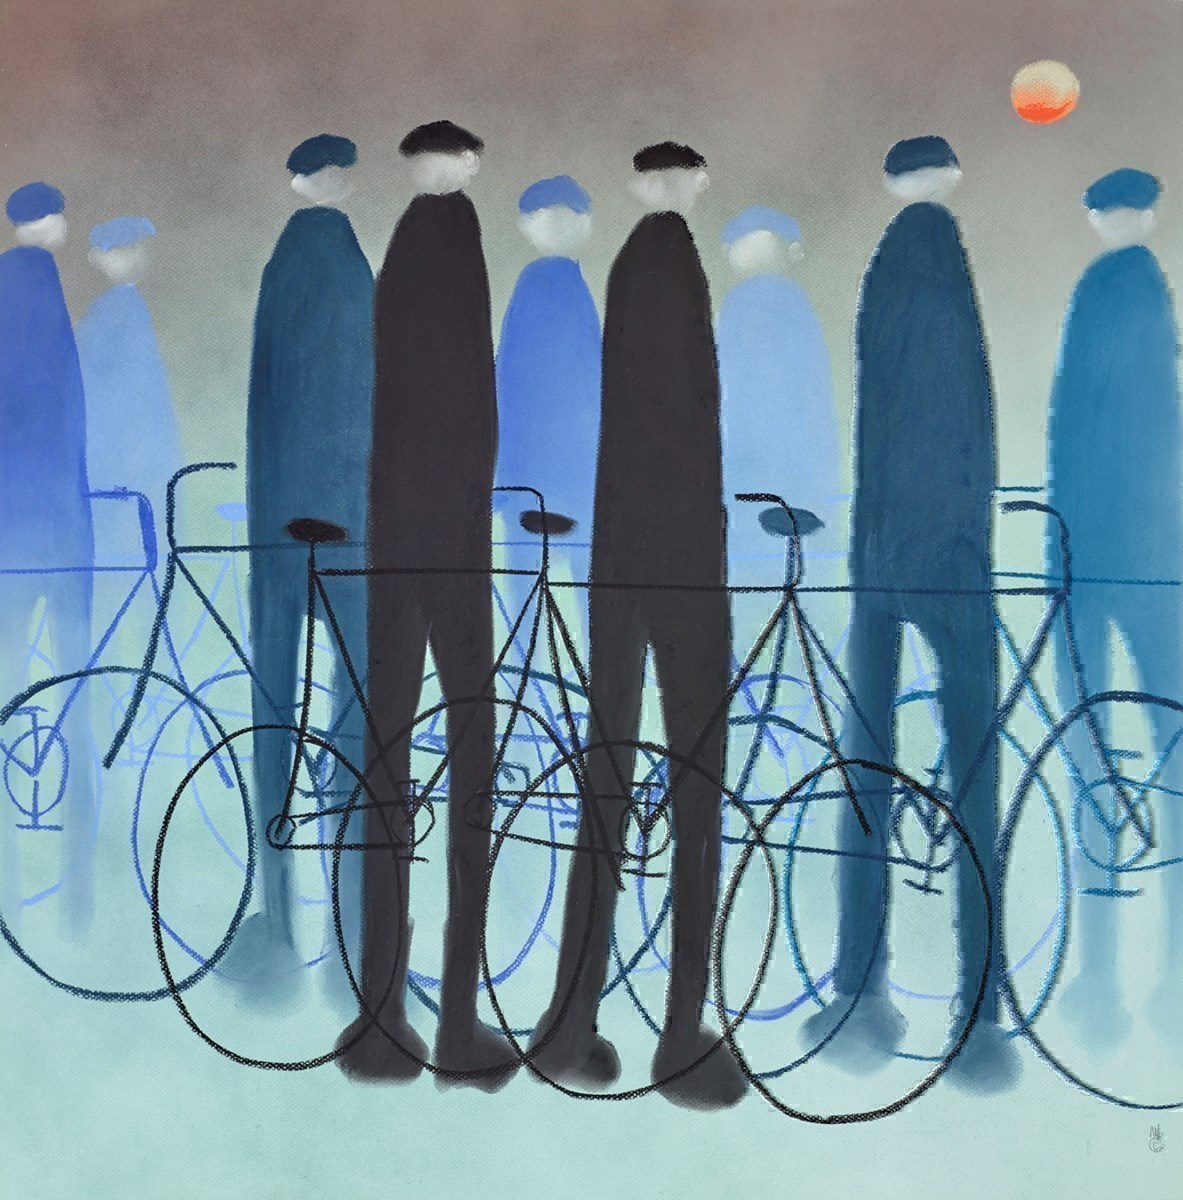 Home Time by Mackenzie Thorpe -  sized 28x28 inches. Available from Whitewall Galleries